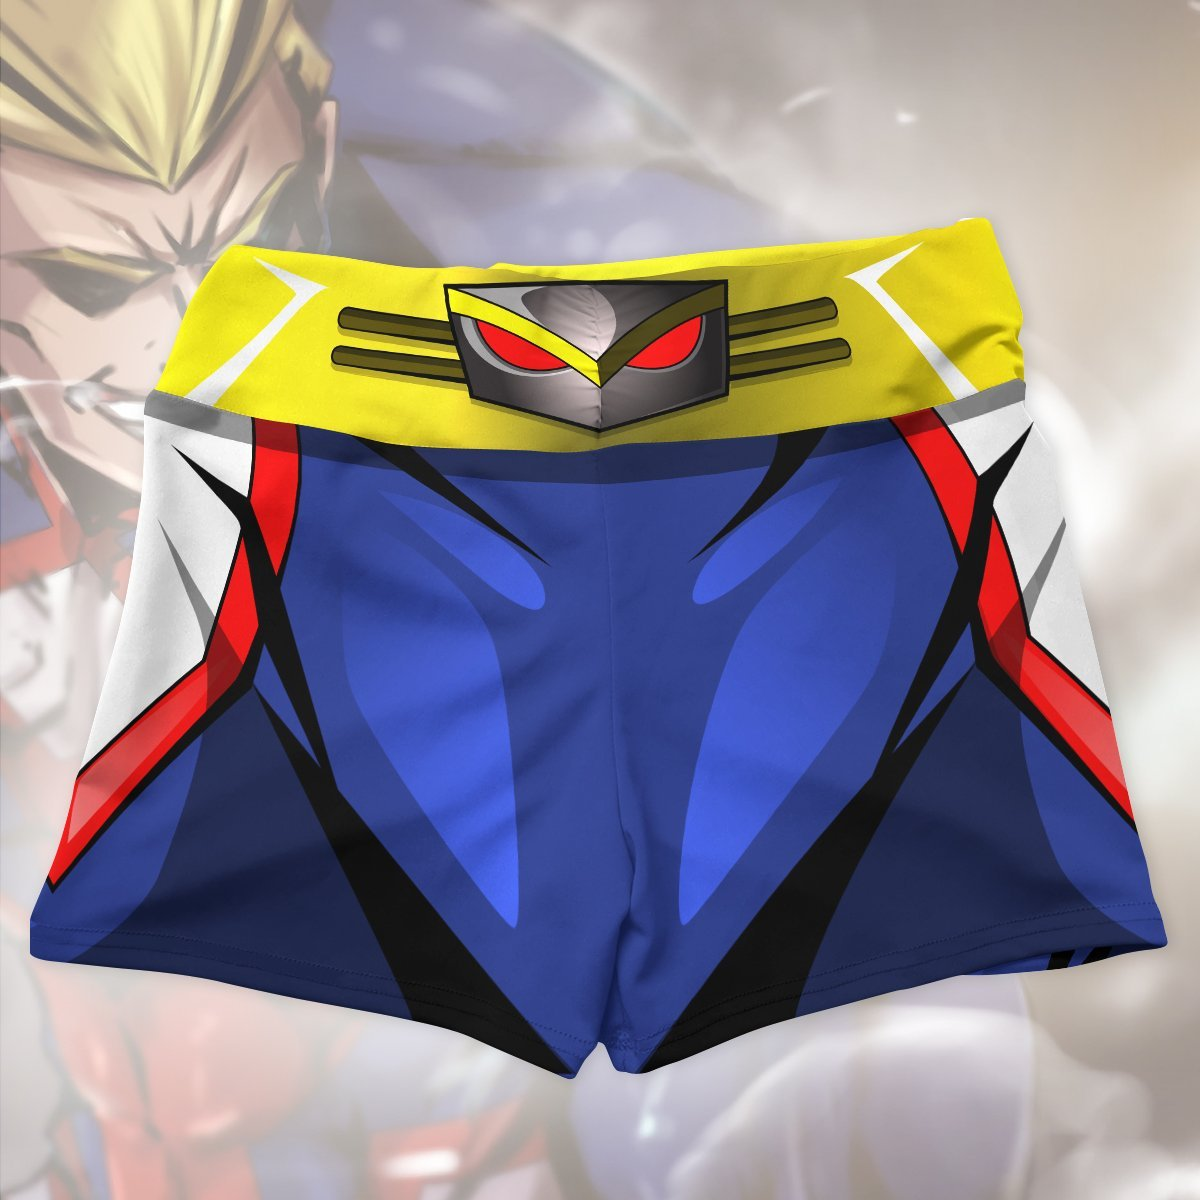 ua high all might active wear set 523249 - Anime Swimsuits